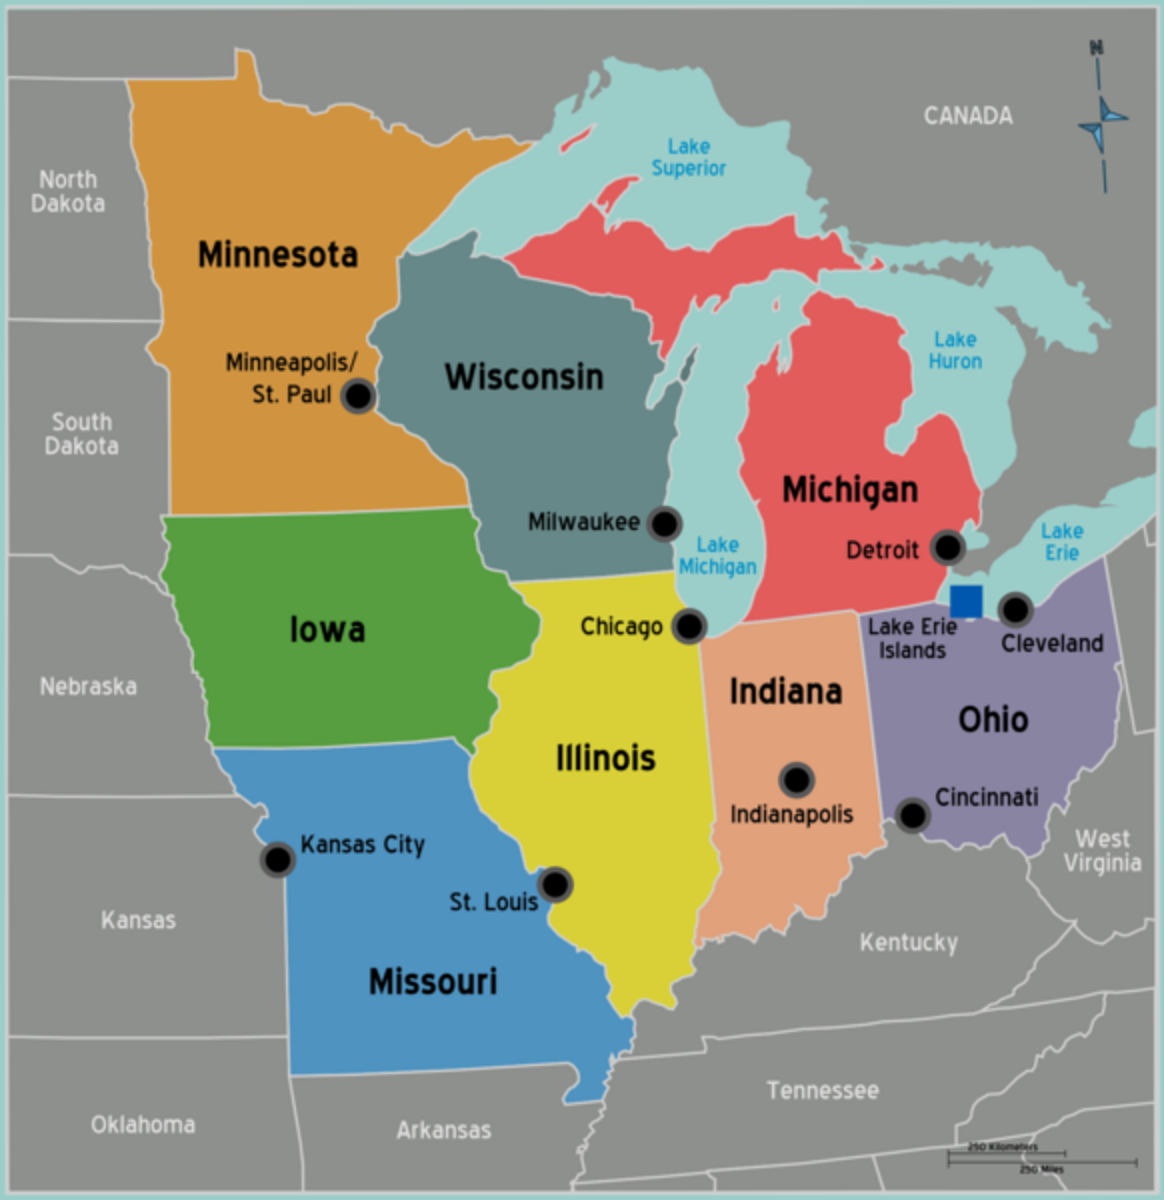 The American Midwest